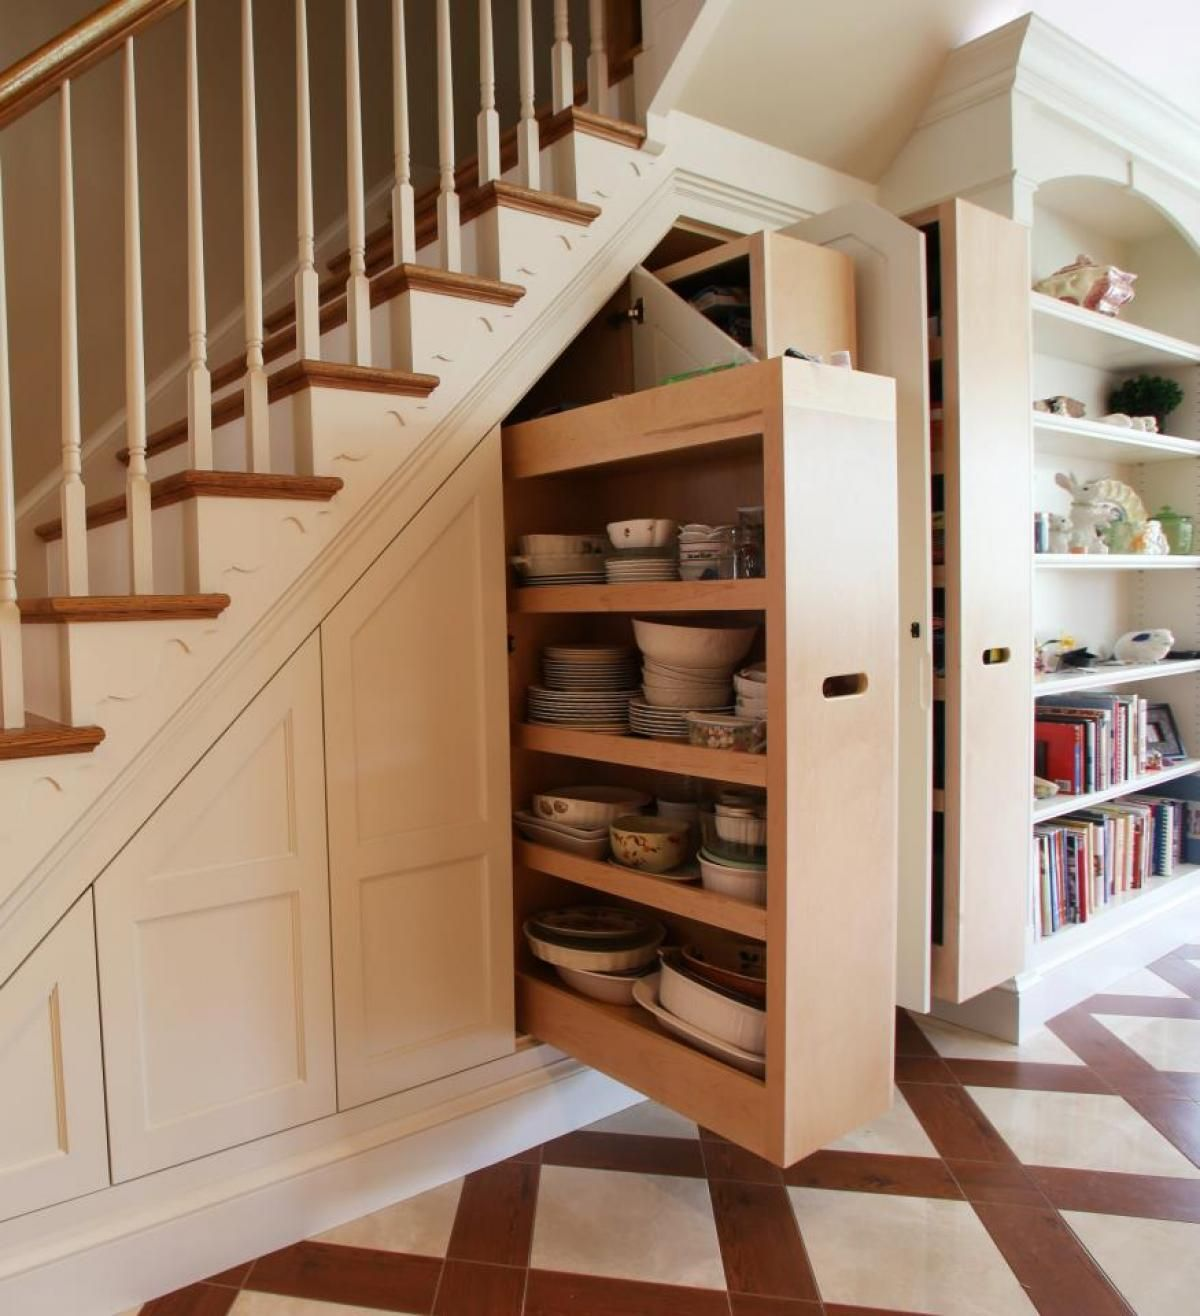 Creative Storage Space Under Stairs Ideas | Drawers, Storage and Spaces